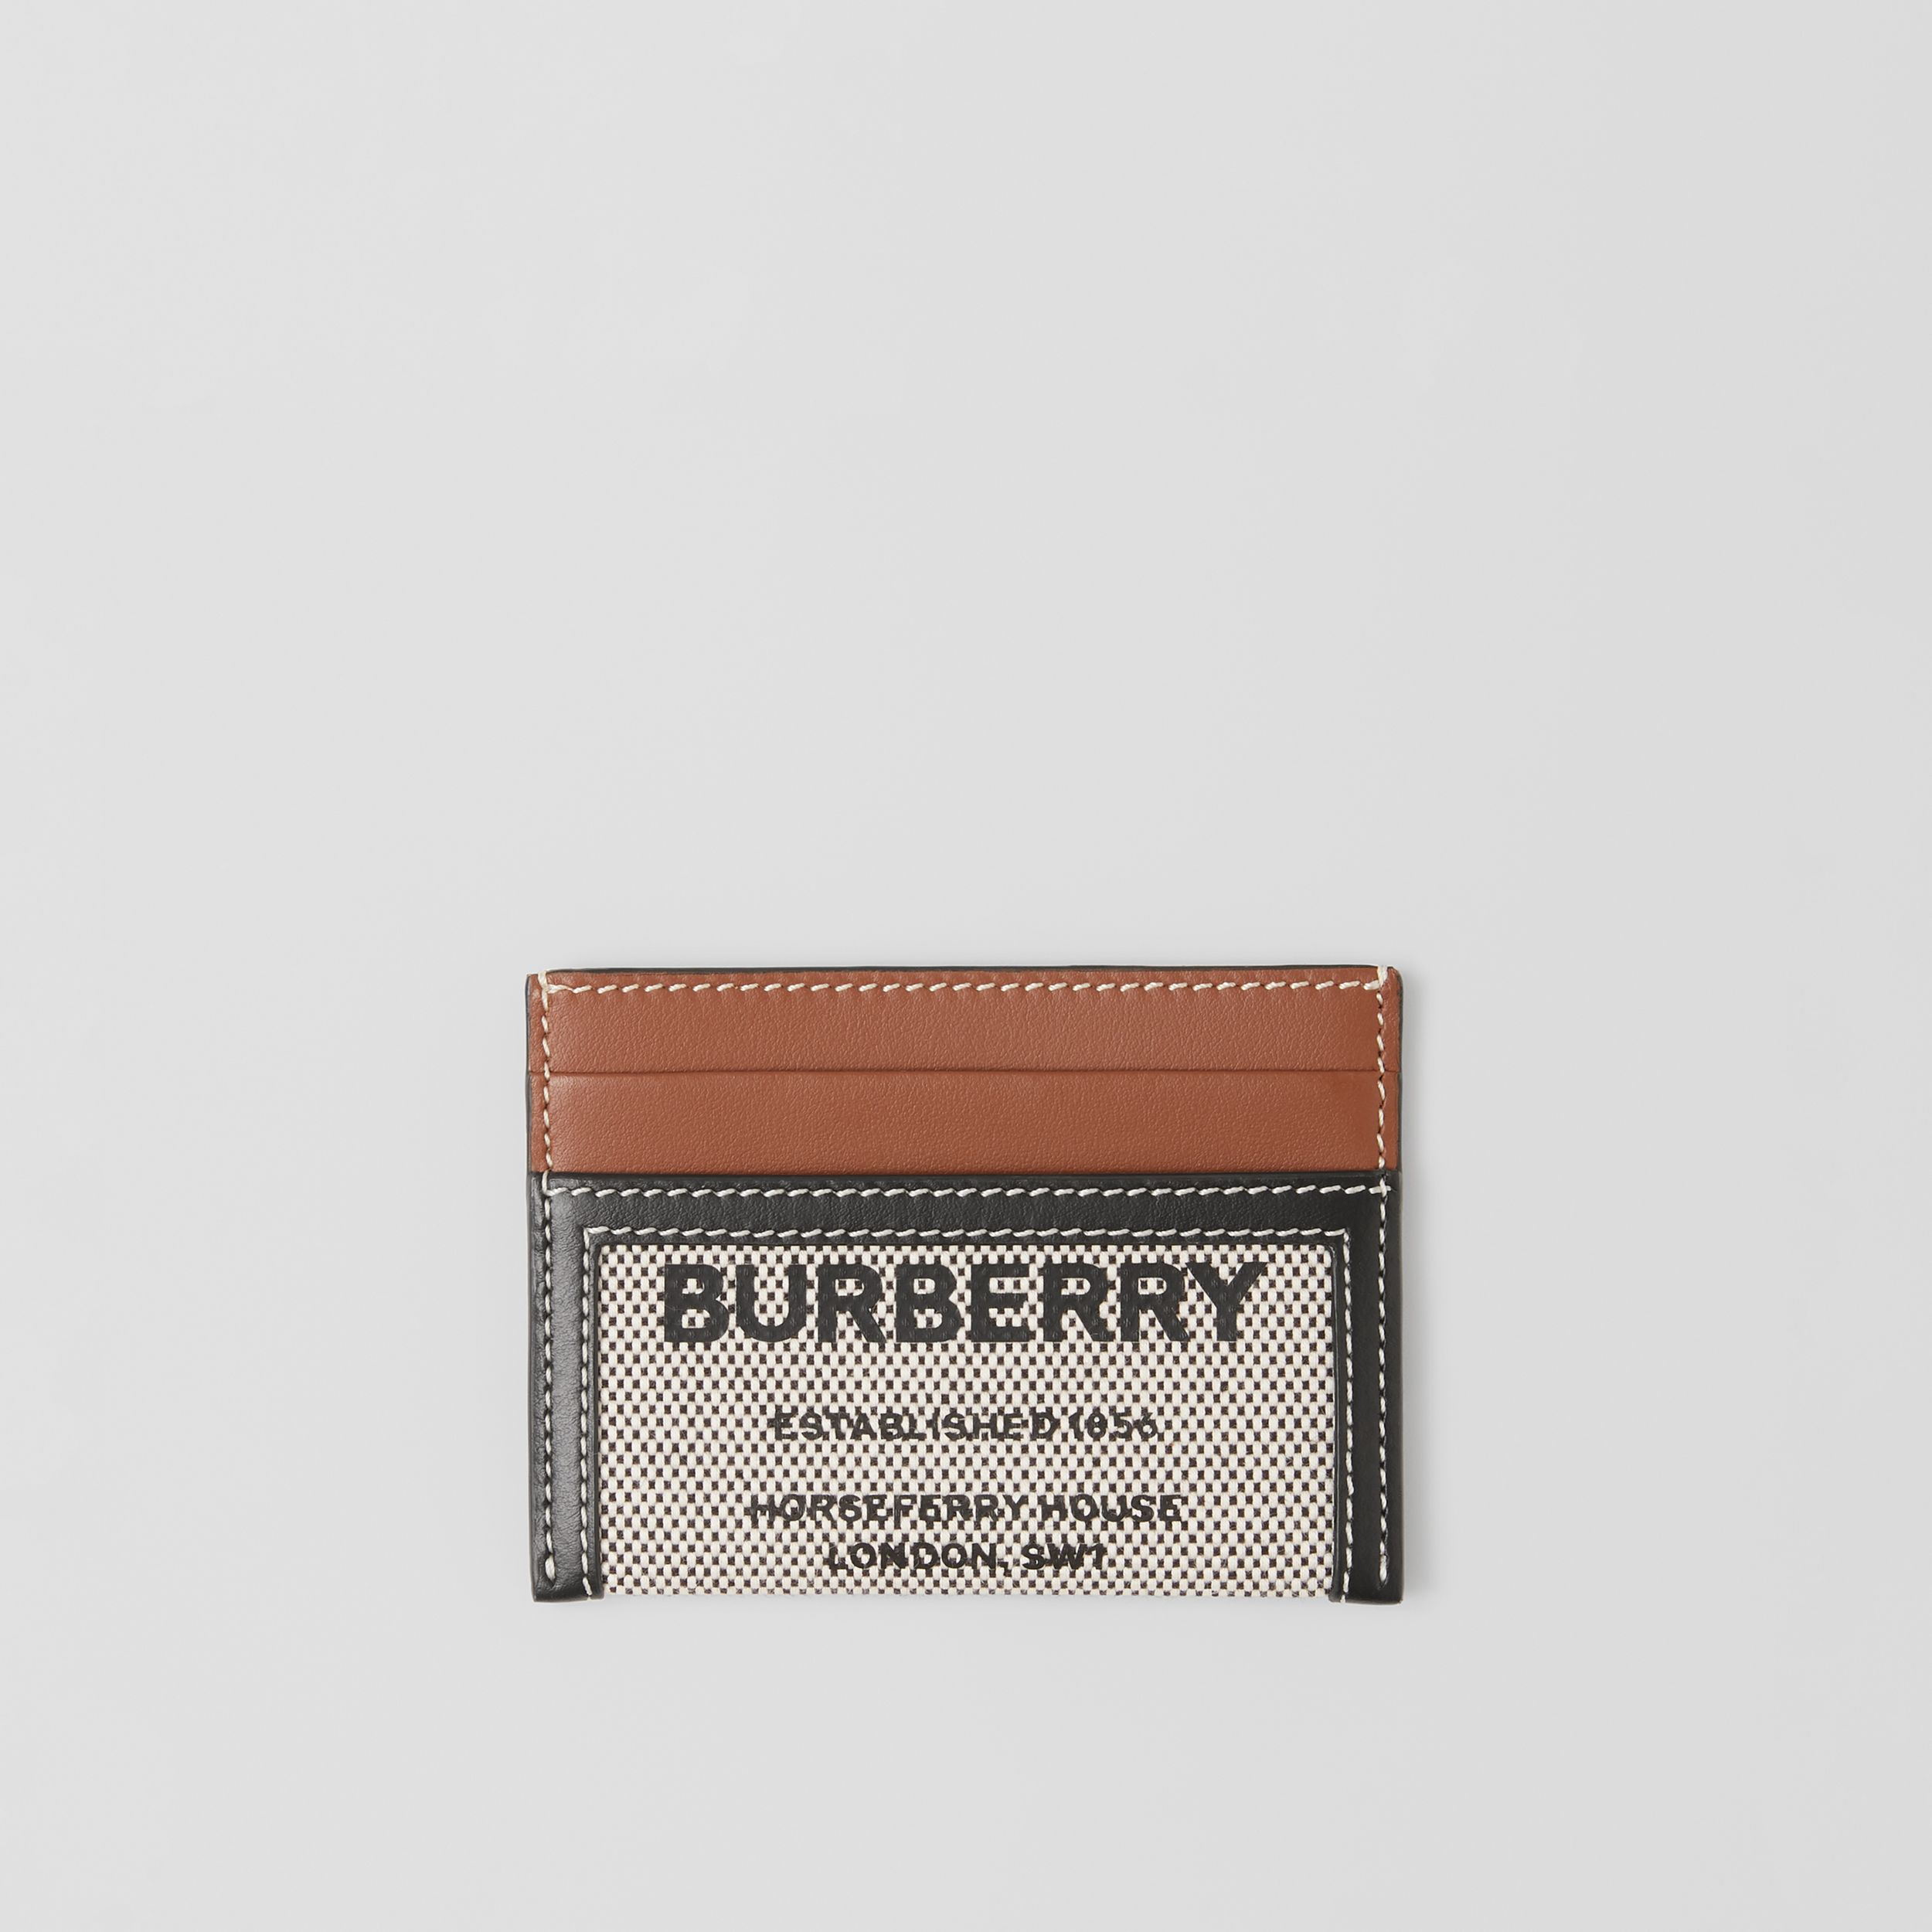 Horseferry Print Cotton Canvas and Leather Card Case in Black/tan - Women | Burberry - 1